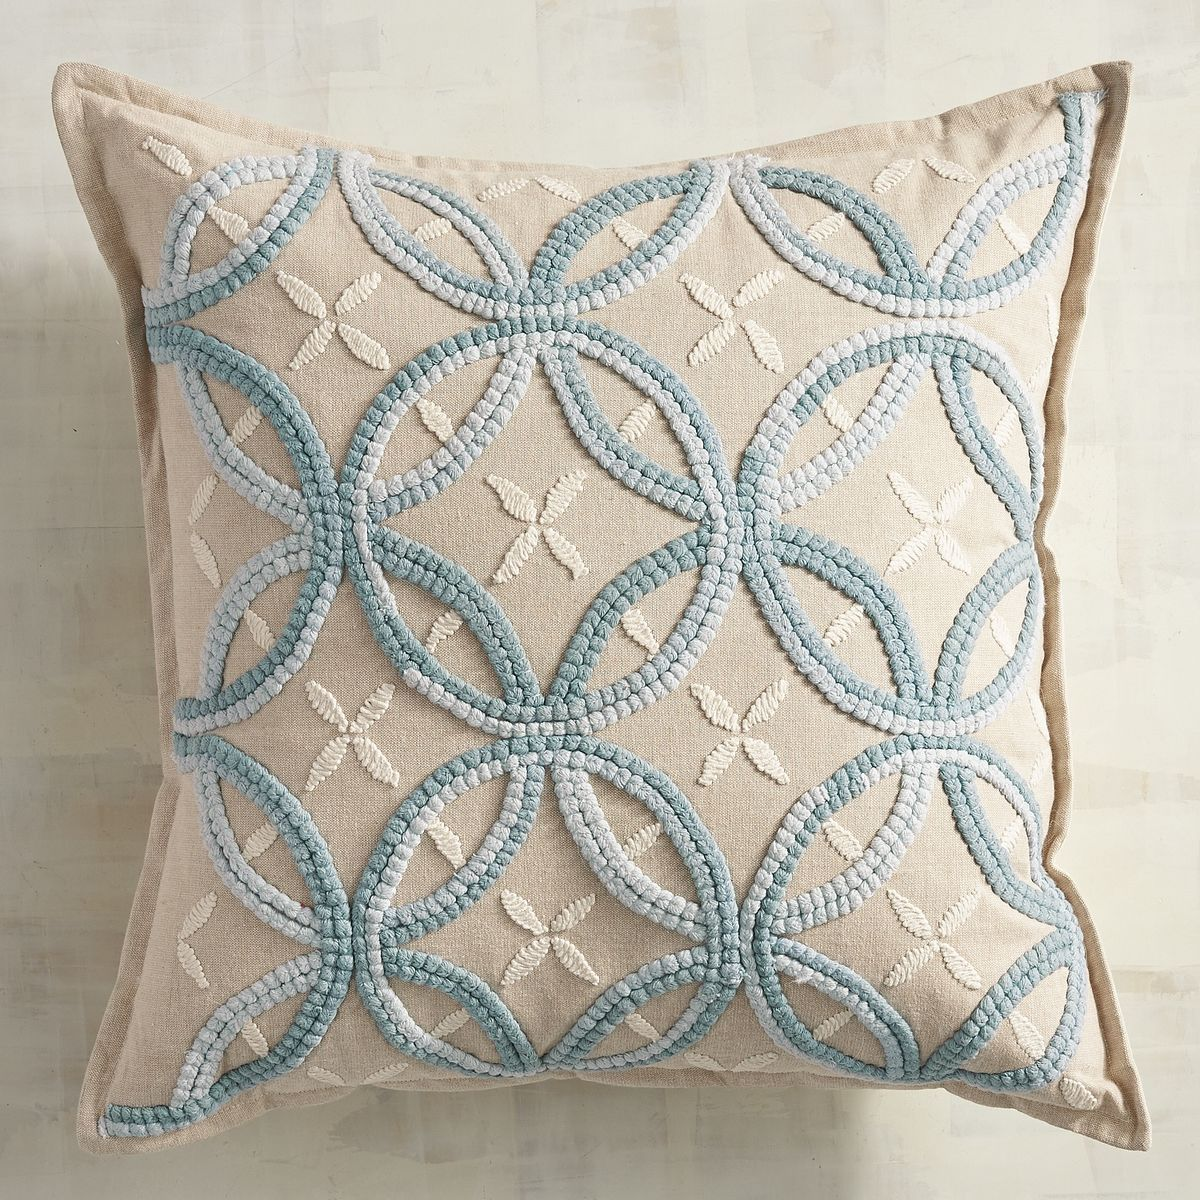 Embroidered Blue Rings Pillow Pier 1 Imports Pillows